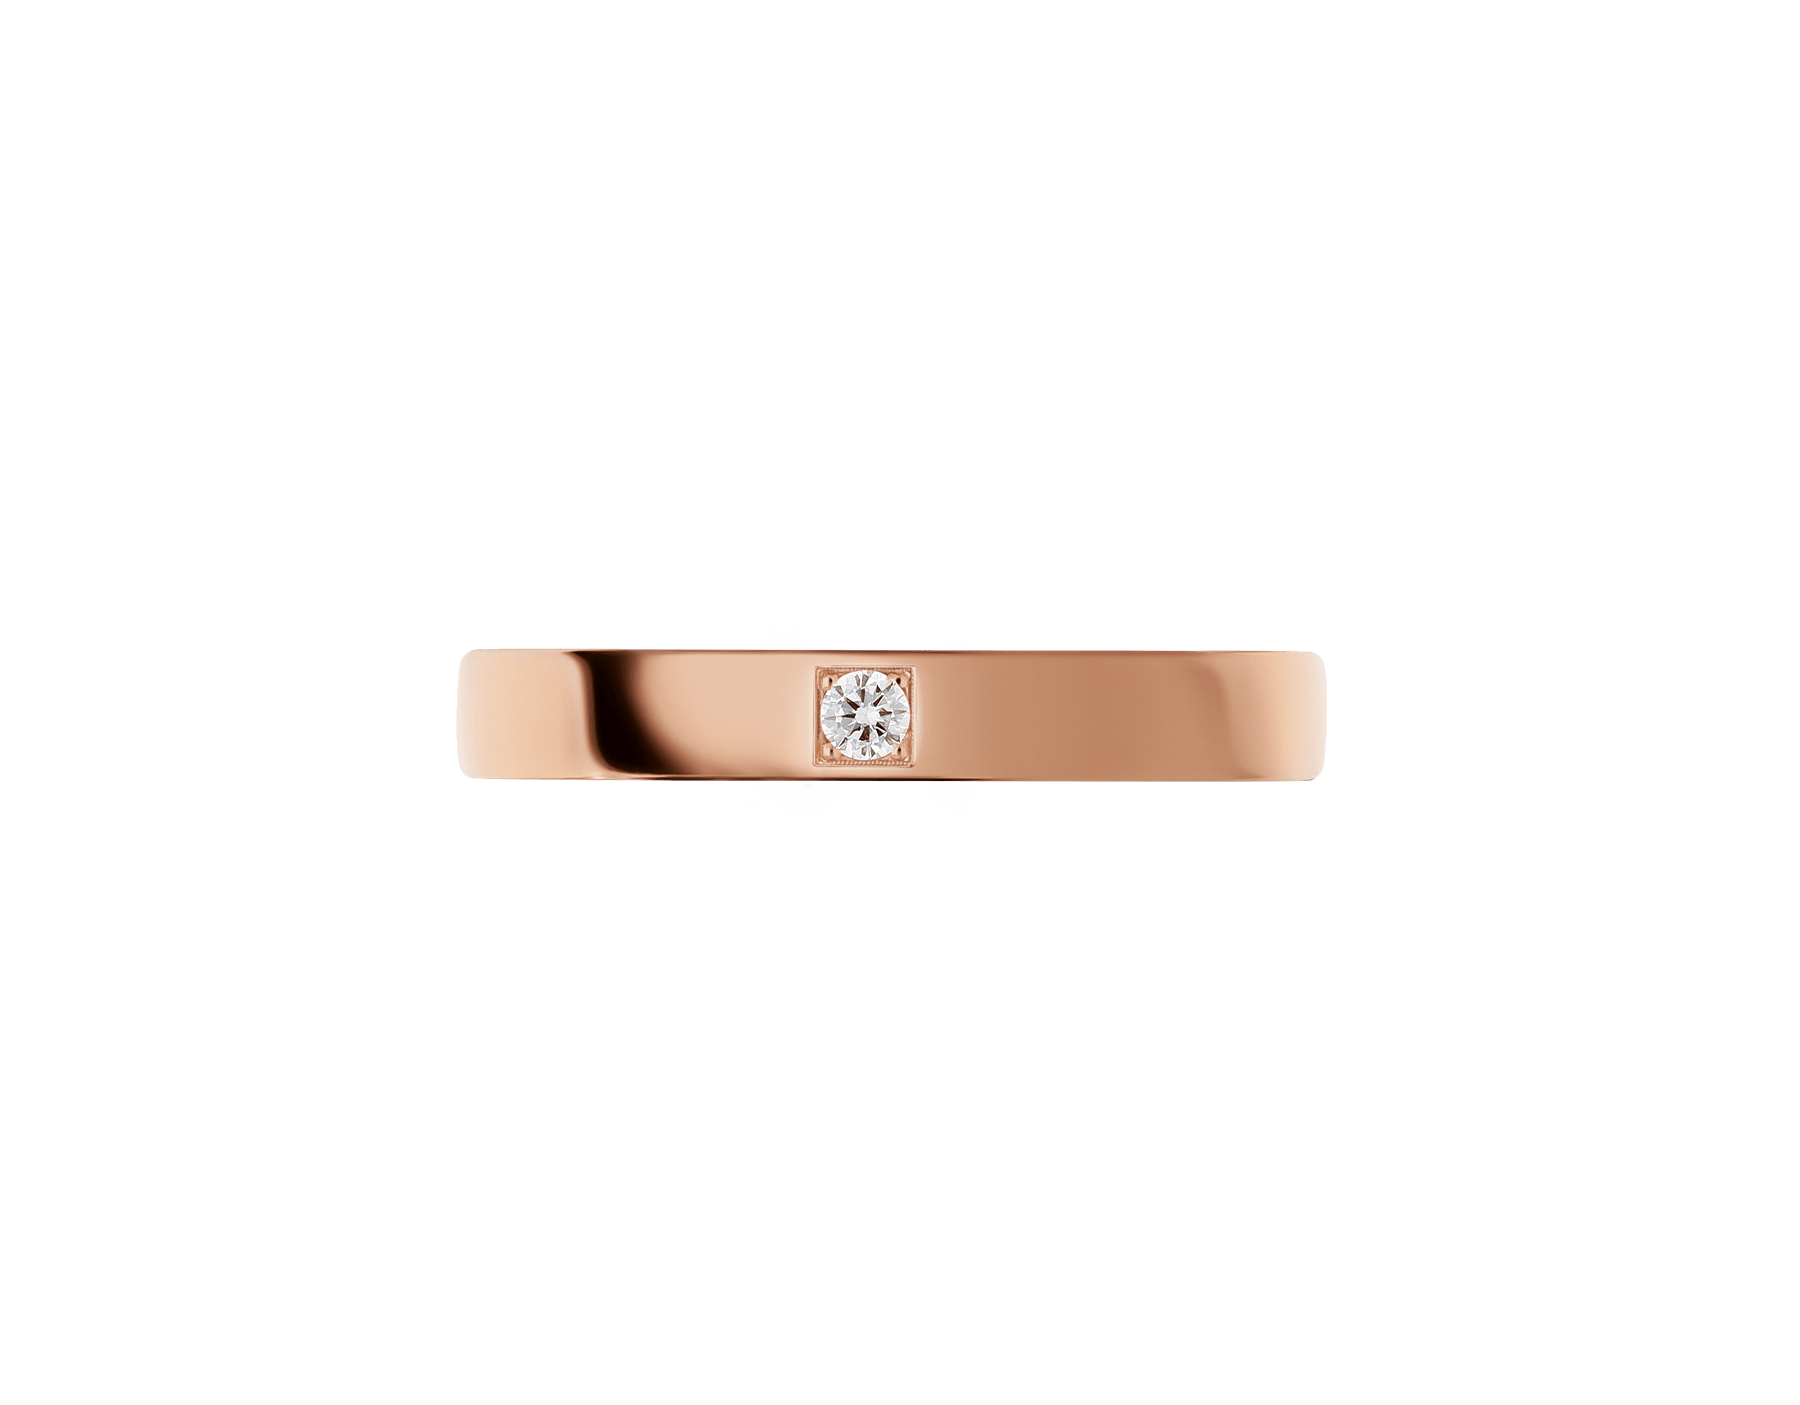 MarryMe 18 kt rose gold wedding band set with a diamond. AN858411 image 3